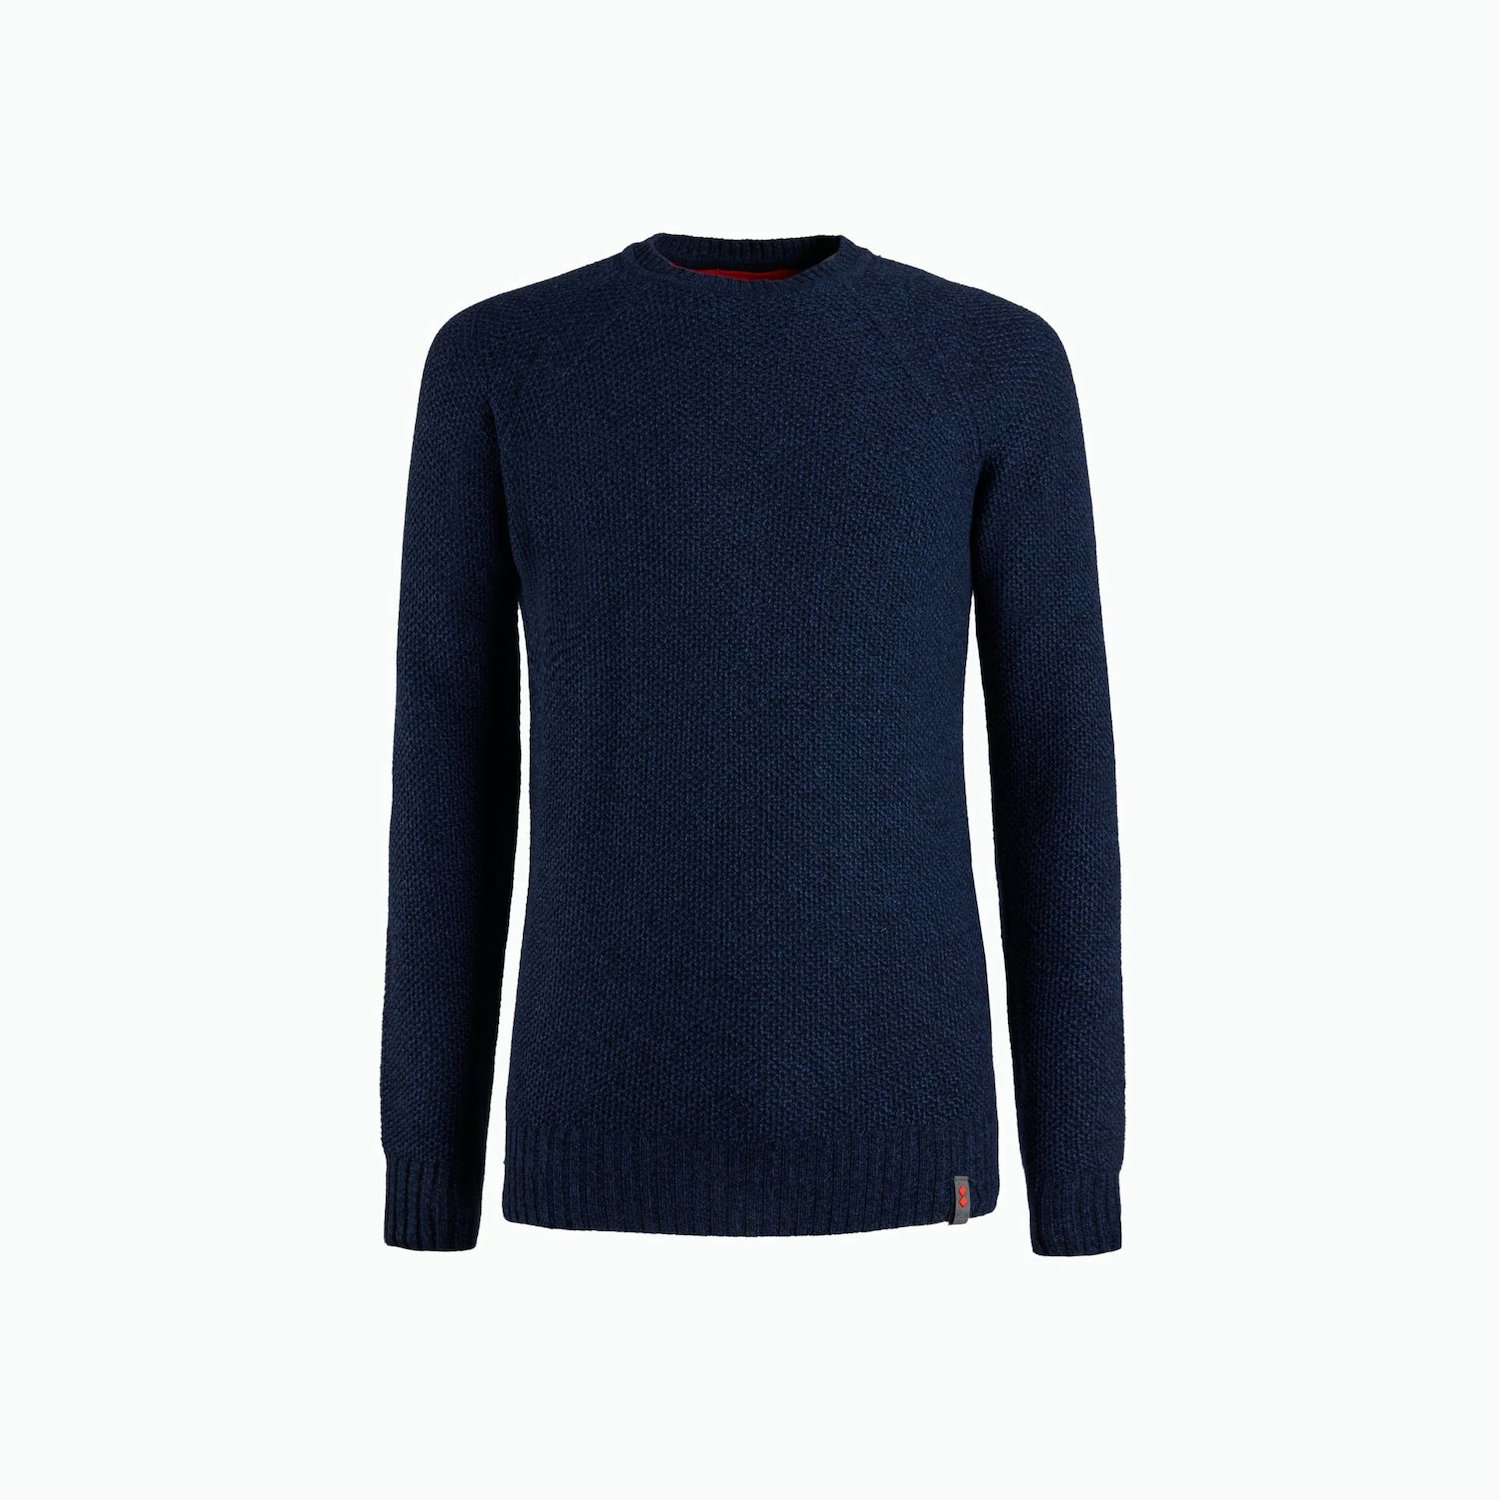 B83 Jumper - Navy